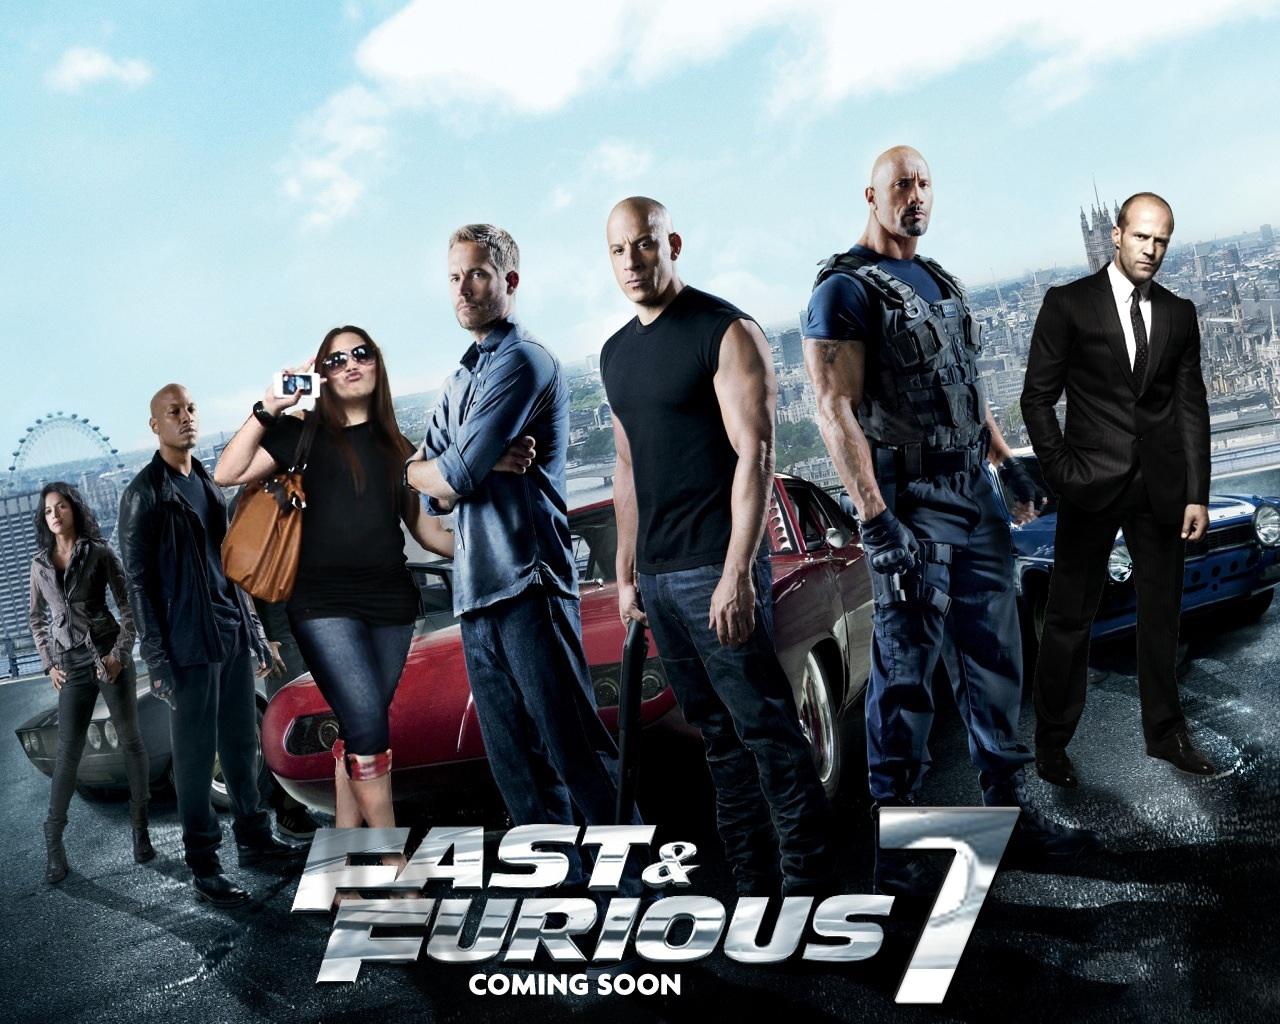 fast and furious 7 full movie watch online free megashare